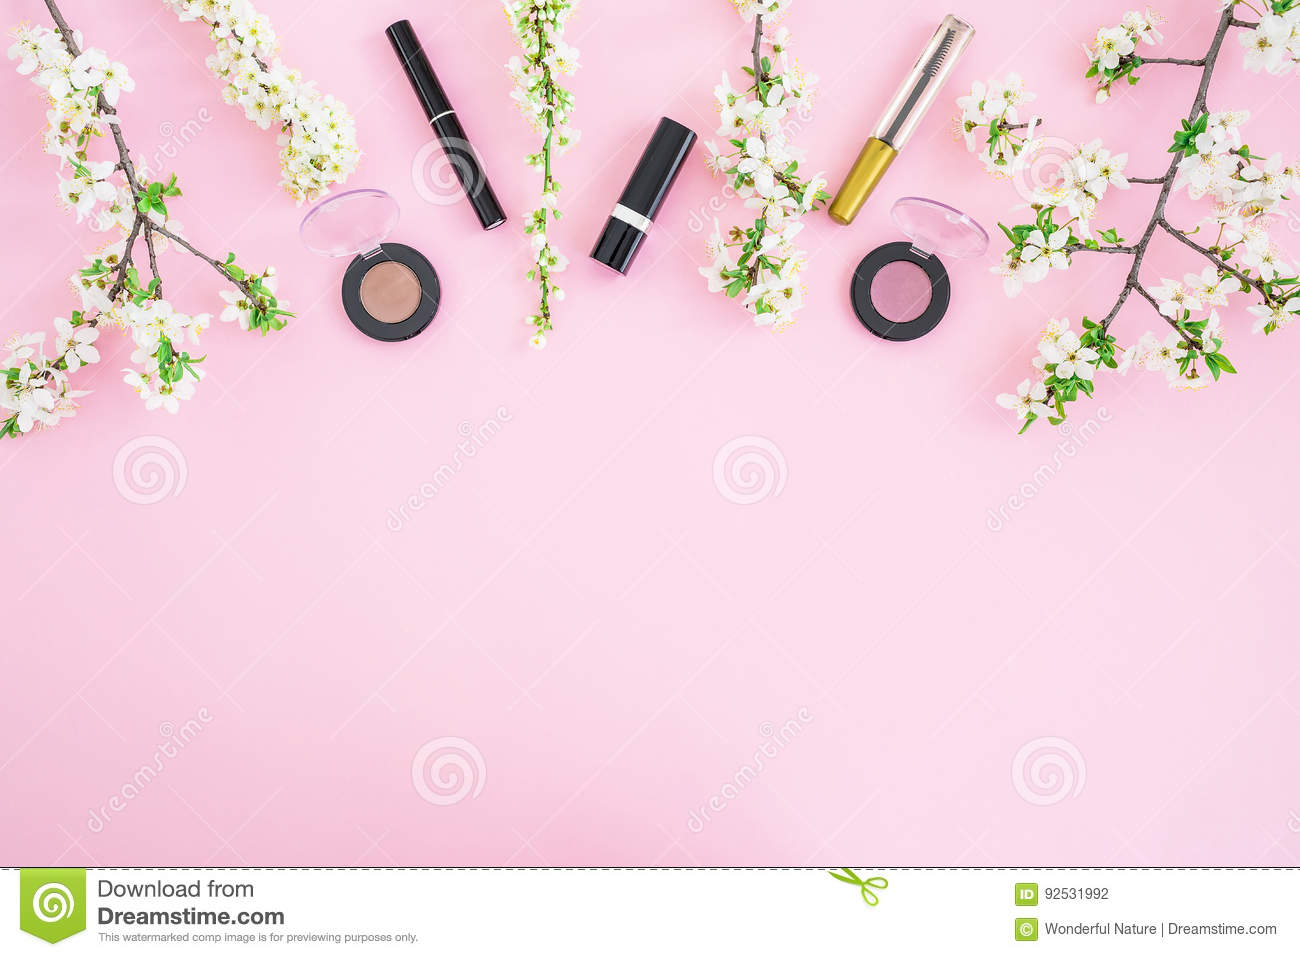 Feminine desk with cosmetic: lipstick, shadows, mascara and white spring flowers on pink background. Flat lay, top view. Beauty co